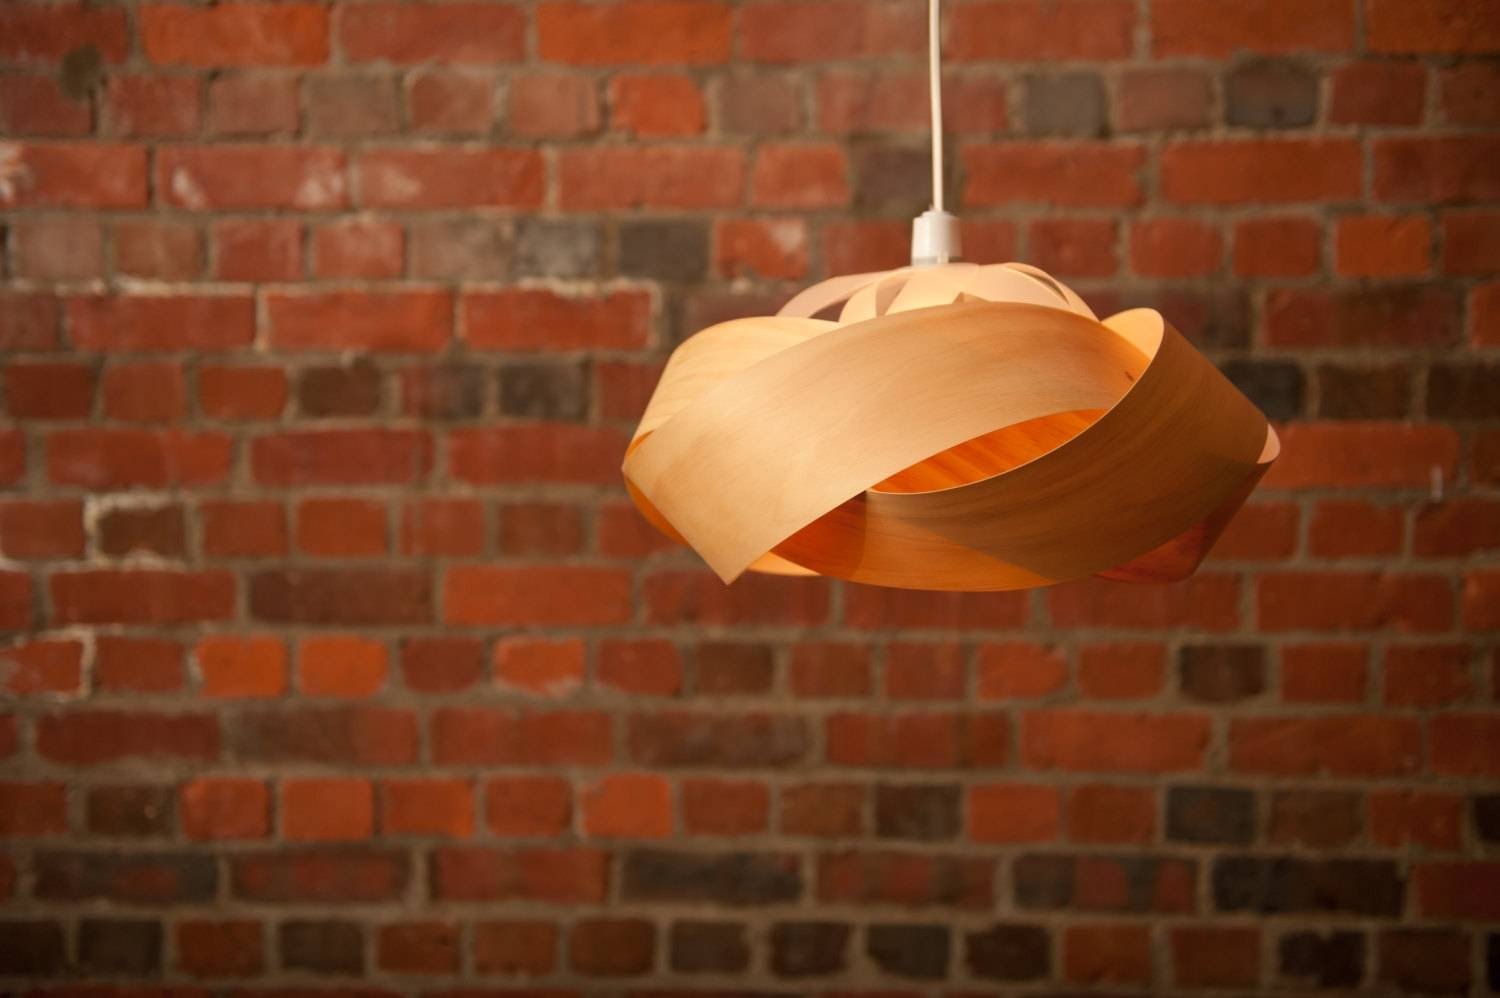 The Wrap Wood Veneer Lightshade Intended For Bent Pendant Lights Image 11 Of 15